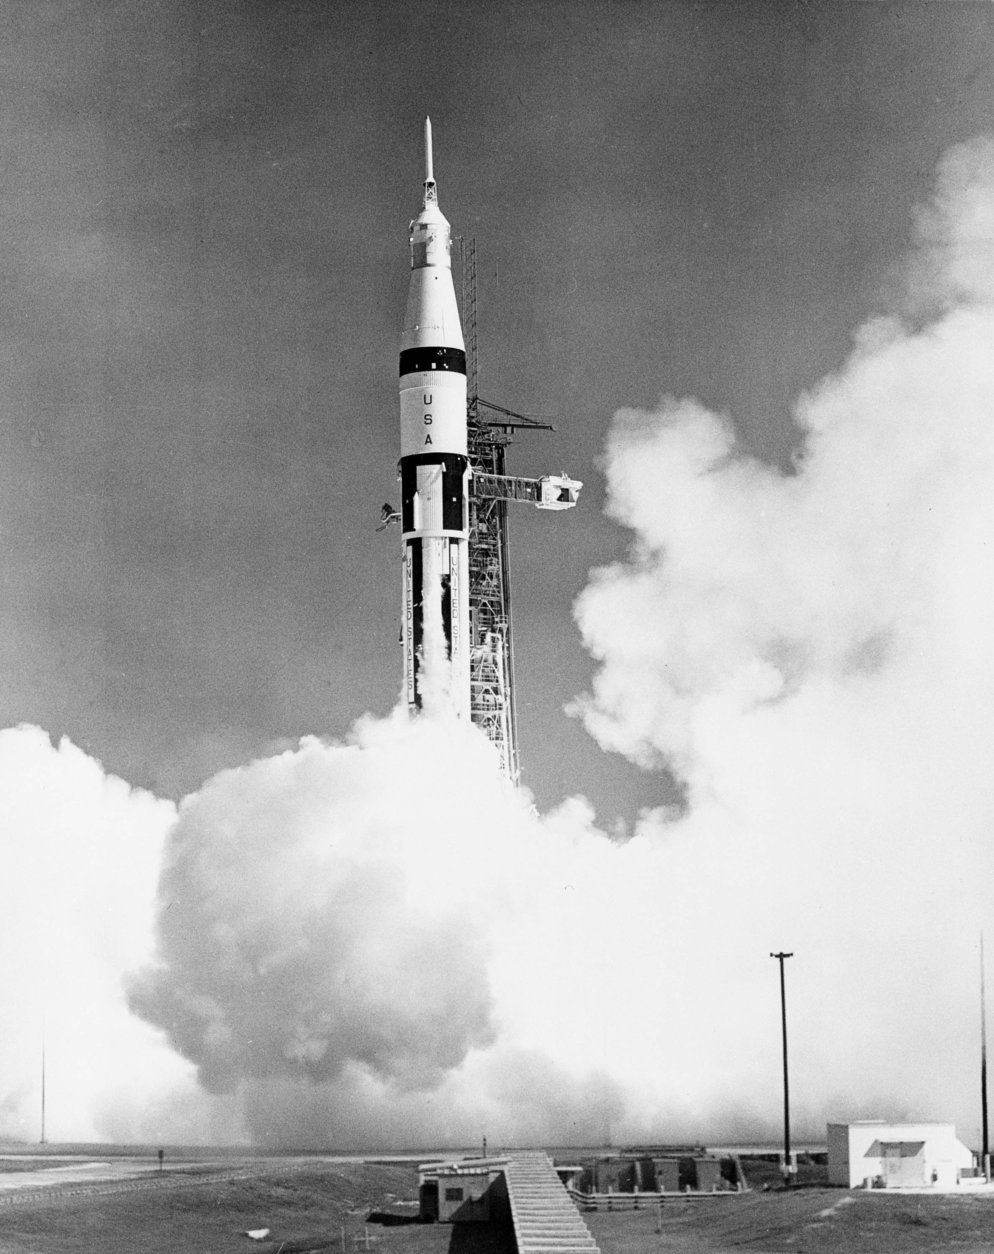 A 224-foot high Saturn IB space vehicle is lifted off at 11:03 a.m. EST from Launch Complex 34 at Cape Kennedy, Fla., Oct. 11, 1968.  The space rocket is carrying  Apollo 7 astronauts Walter M. Schirra Jr., commander; Donn F. Eisele, command module pilot; and Walter Cunningham, lunar module pilot.  The open-ended mission, scheduled to span 11 days, is designed to qualify the three-man Apollo spacecraft system for future voyages planned by NASA.  (AP Photo)